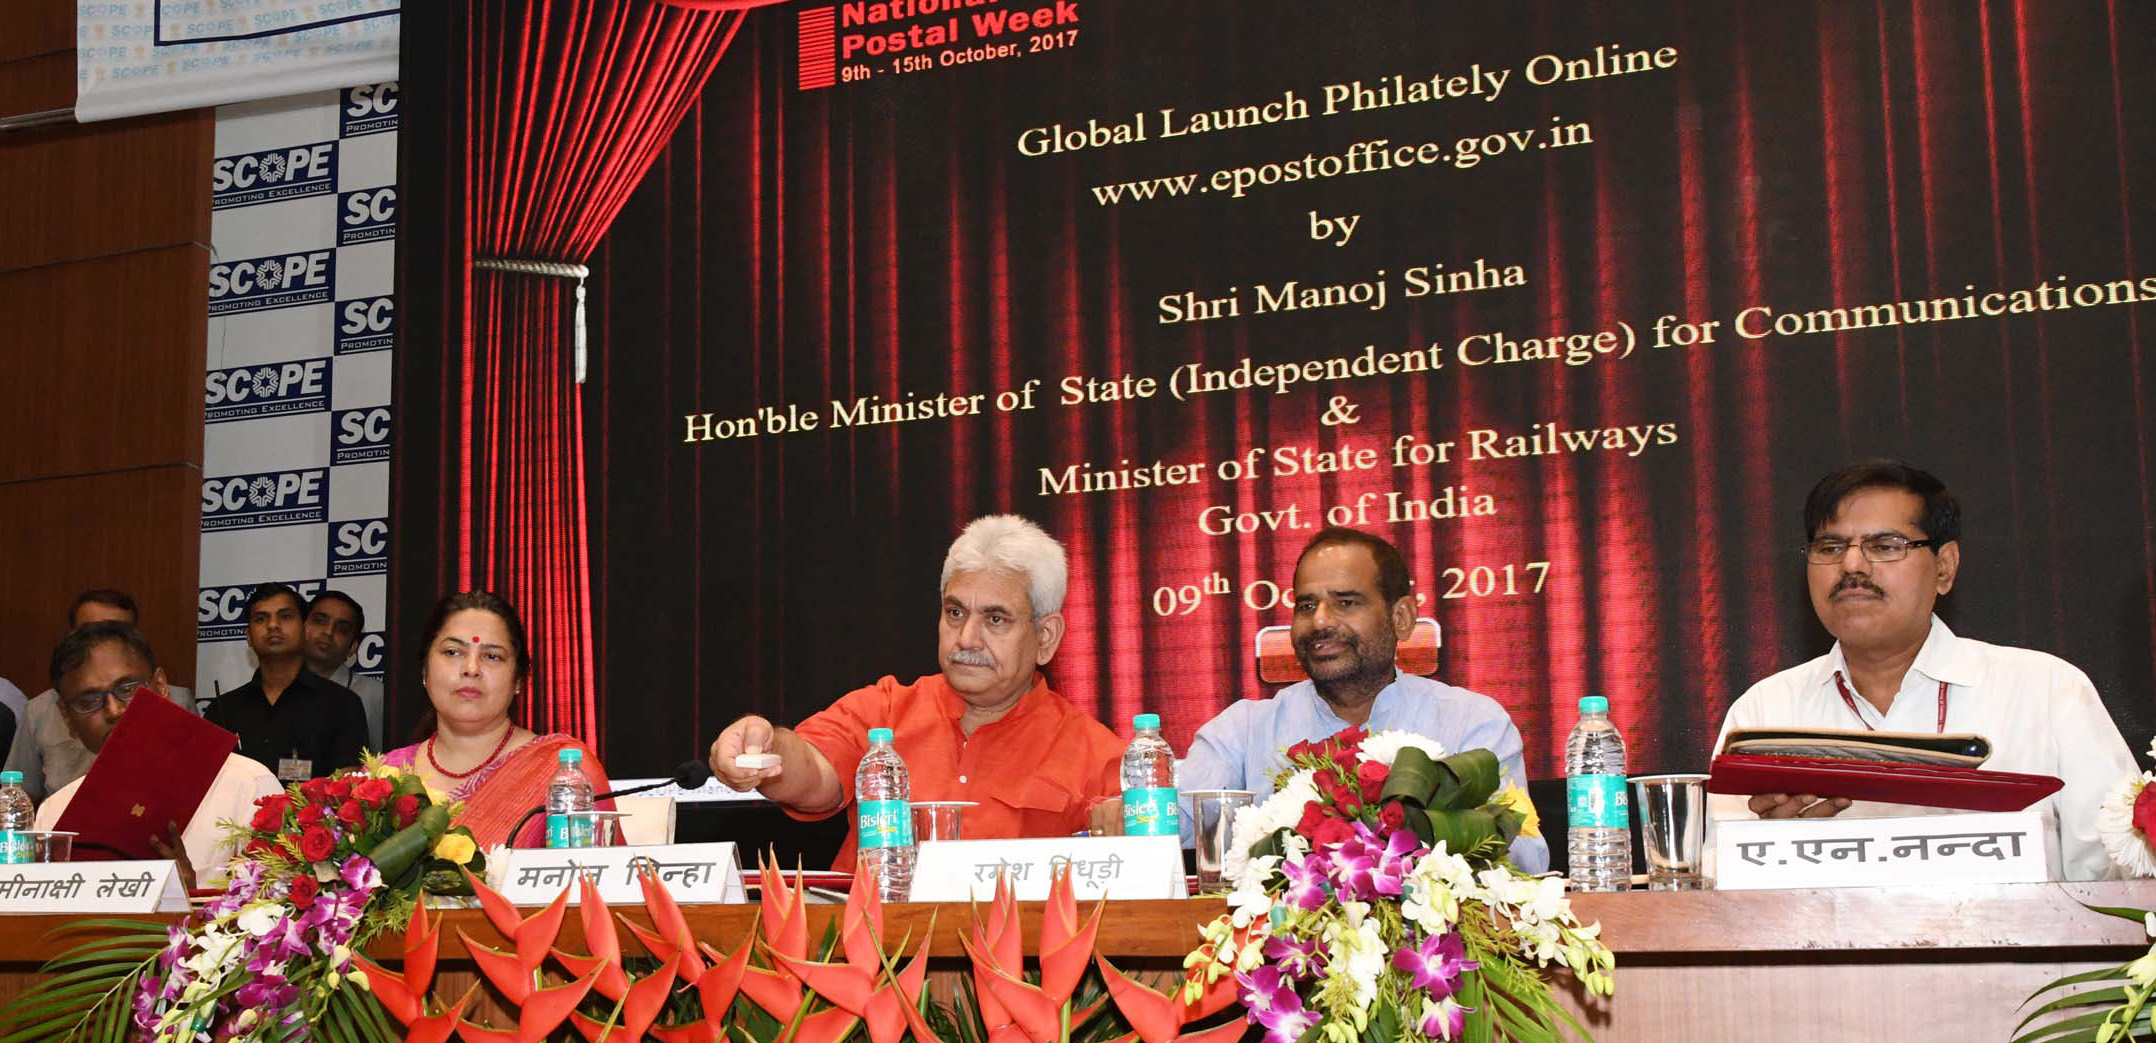 The Minister of State for Communications (I/C) and Railways, Shri Manoj Sinha at the launch of the International Tracked Packet (for Asia Pacific Region) & e-IPO (Bihar, Jharkhand & Karnataka), on the occasion of the World Post Day, in New Delhi on October 09, 2017. The Secretary, (Post), Shri Ananta Narayan Nanda and other dignitaries are also seen.